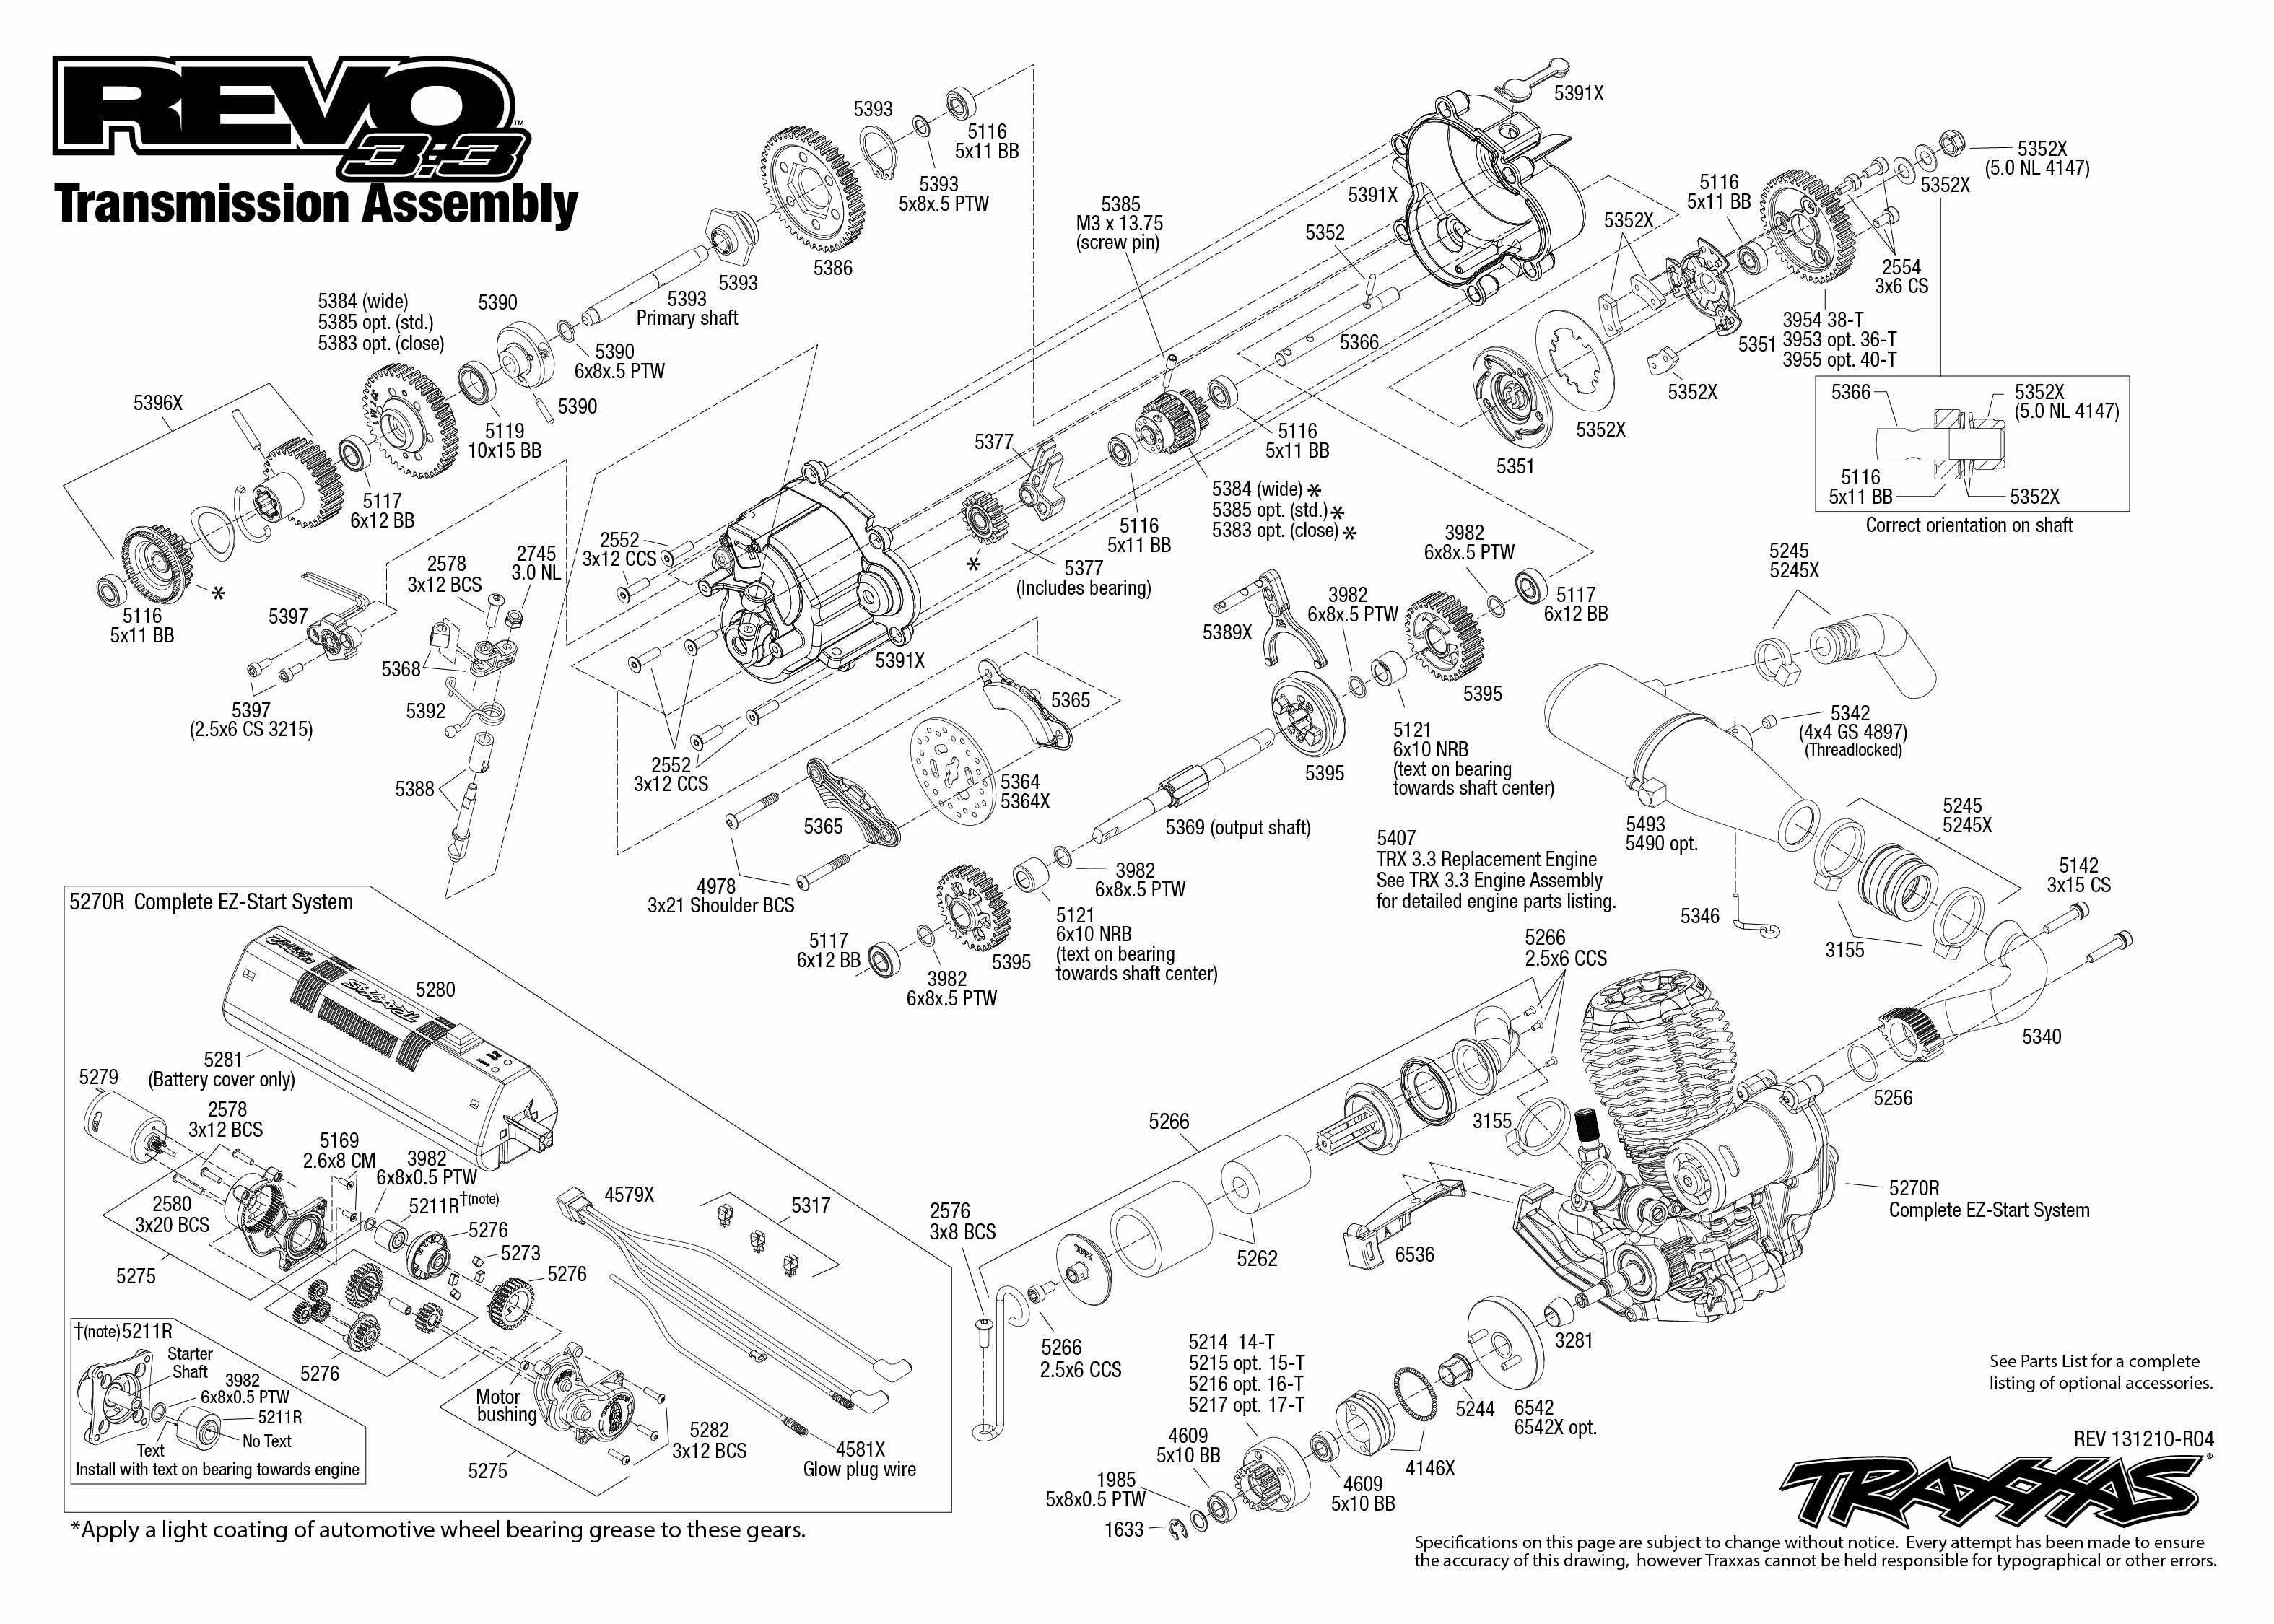 5309_Revo33 TQi exploded views 131210_5309 Transmission Assembly 5309 transmission exploded view (revo 3 3, w tqi 2 4ghz docking traxxas revo 3.3 wiring diagram at honlapkeszites.co